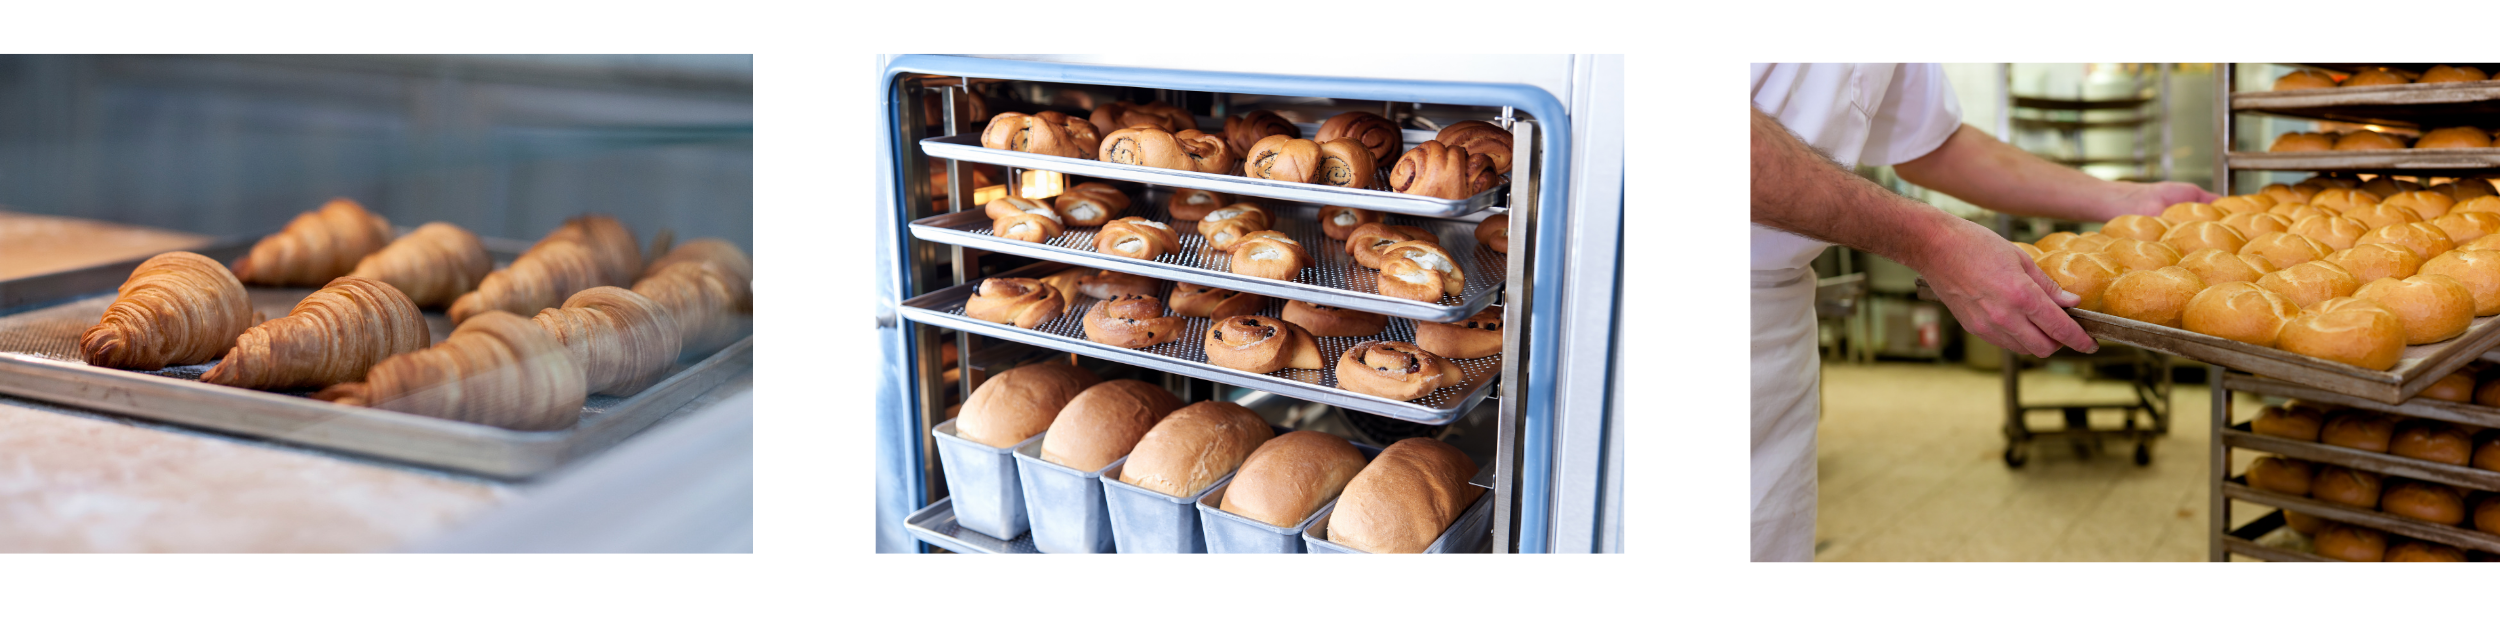 Bun pans and bun pan racks being used in commercial kitchen